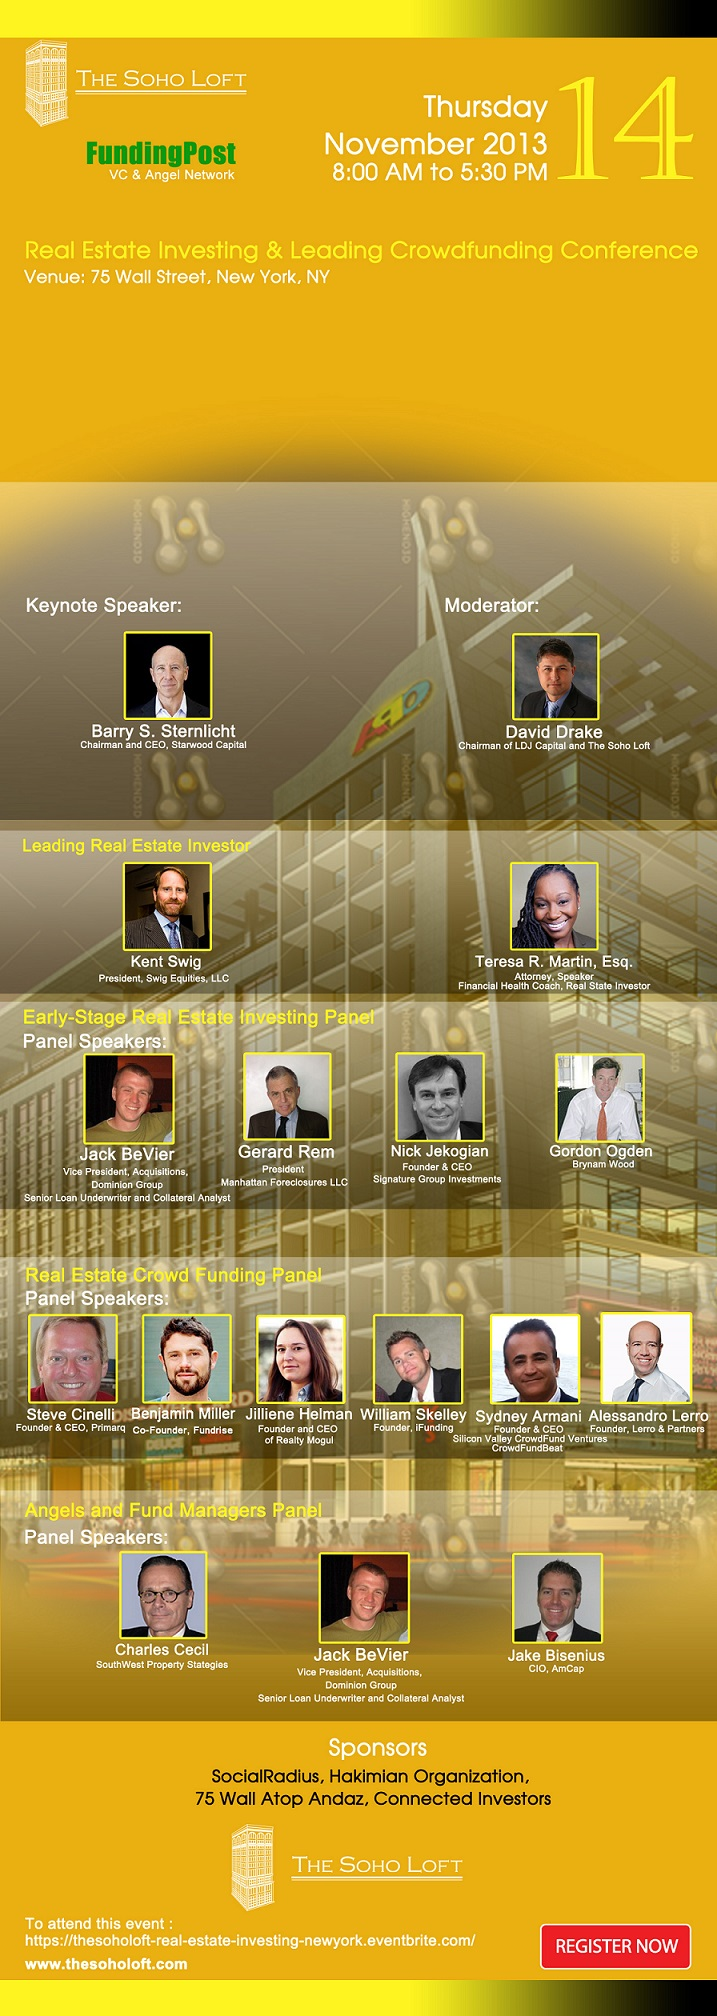 New York City Real Estate Investing & Leading Crowdfunding Conference